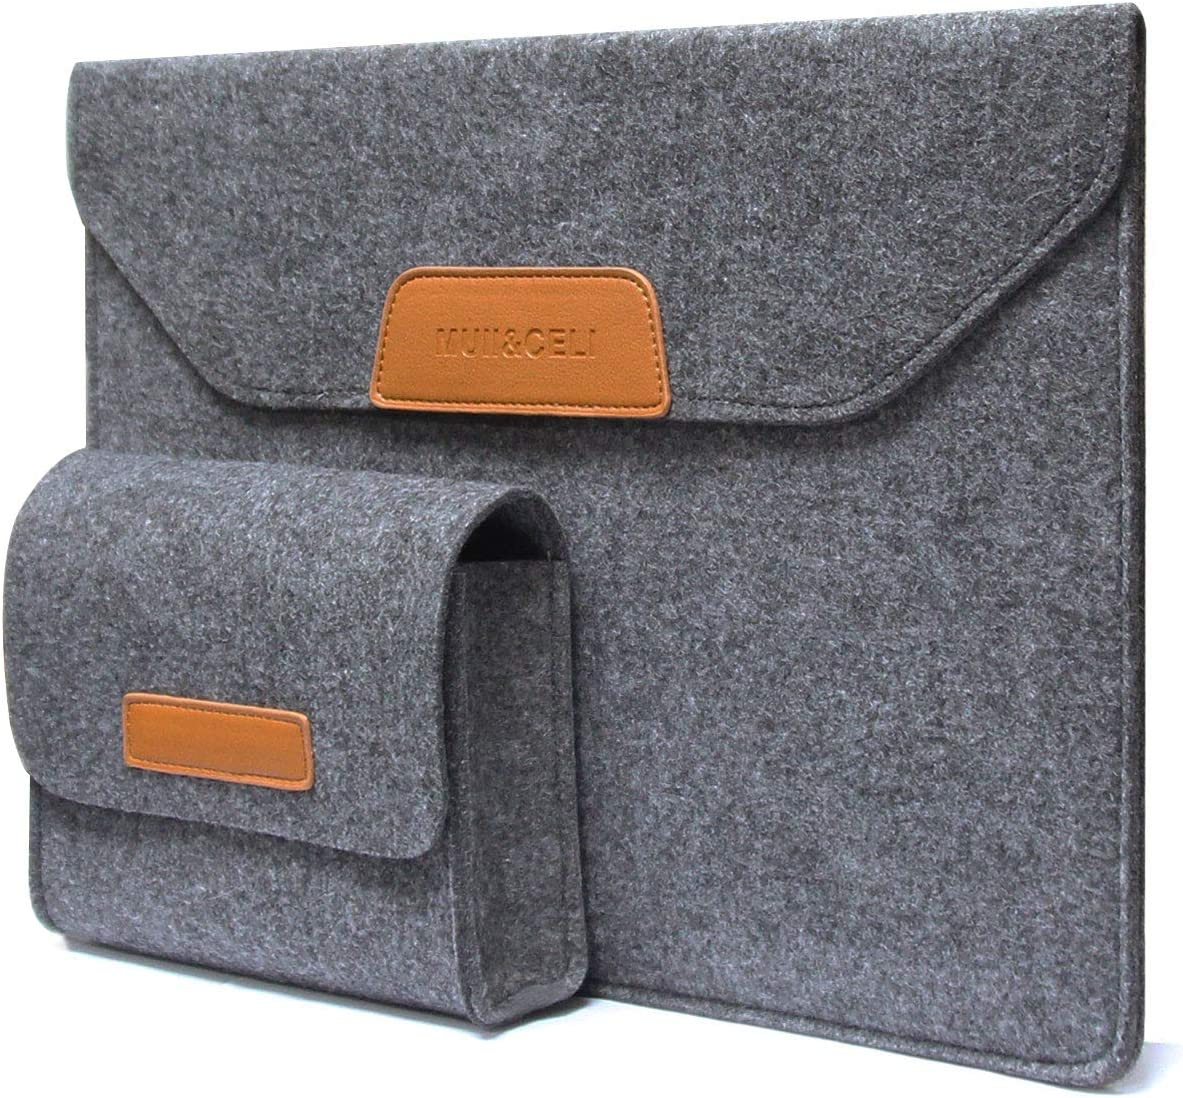 Laptop Sleeve, MUII&CELI Slim Laptop Sleeve Compatible 13 inch New MacBook Air (A1932)  13 inch New MacBook Pro (A1989/A1706/A1708)  12.9''Pad Pro  Surface 6/5/4/3 Accessory Pouch for Devices- Grey